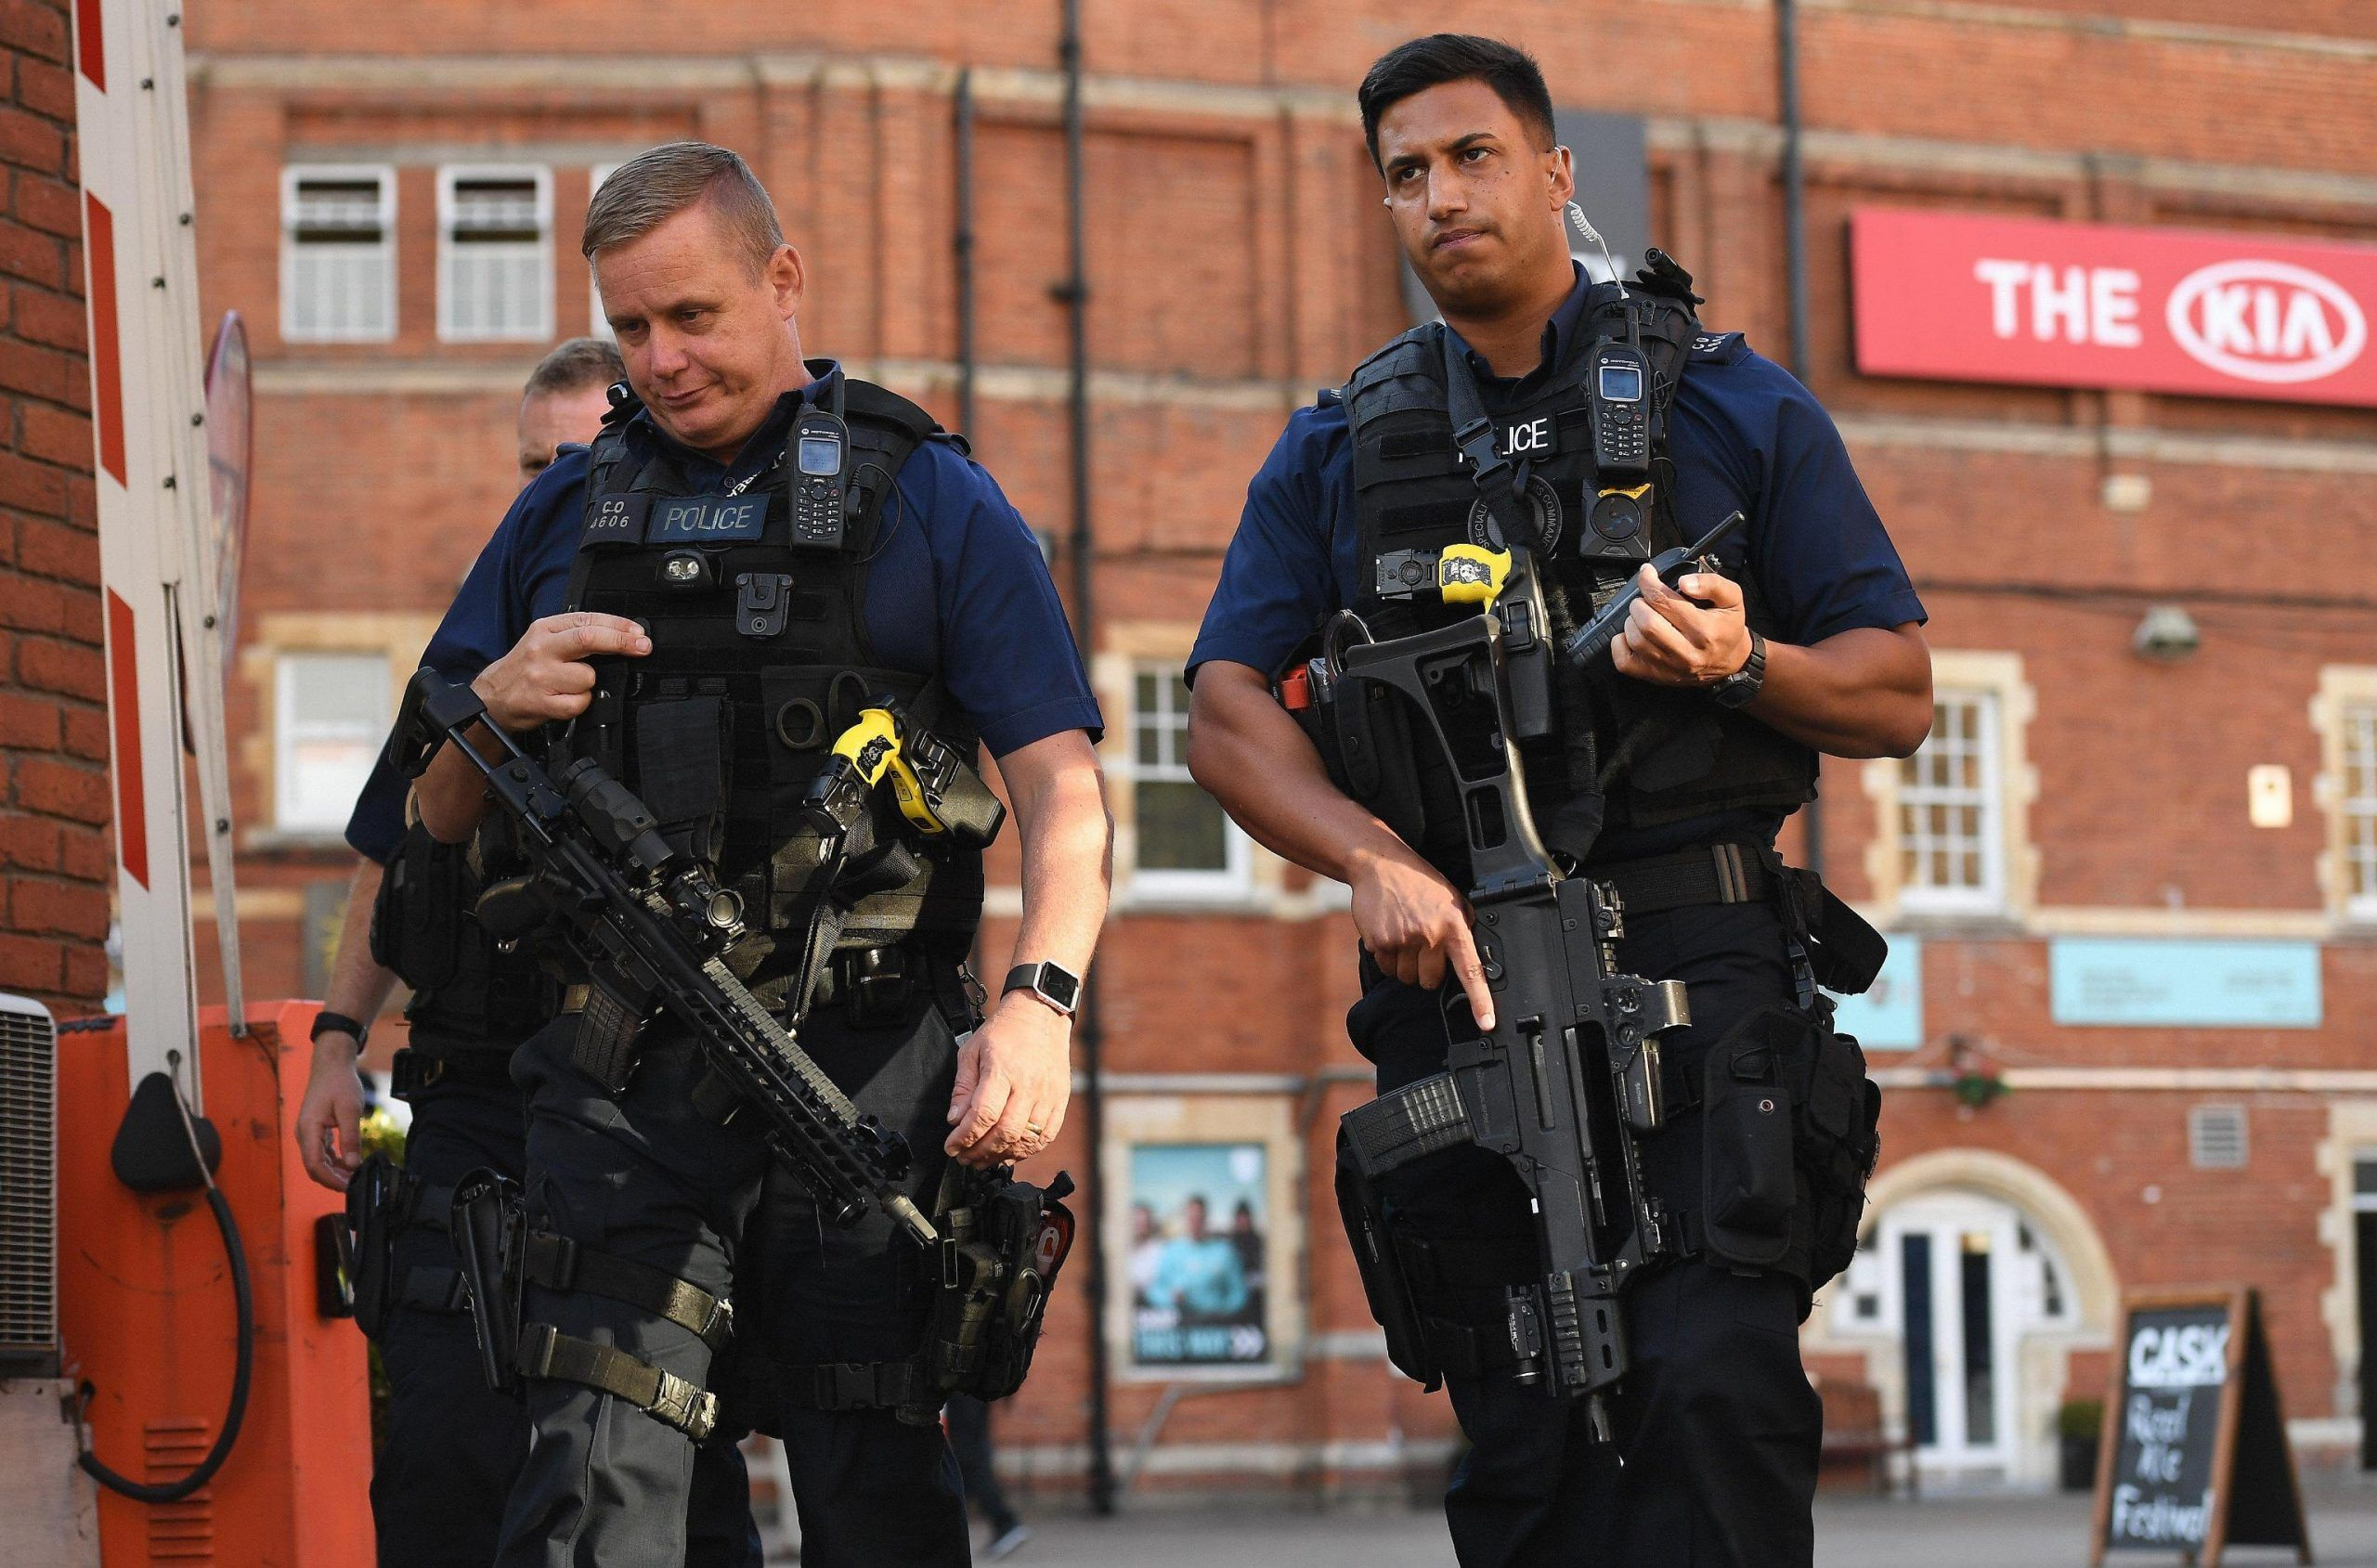 Police react to incident at the Oval as someone fired an arrow onto the field